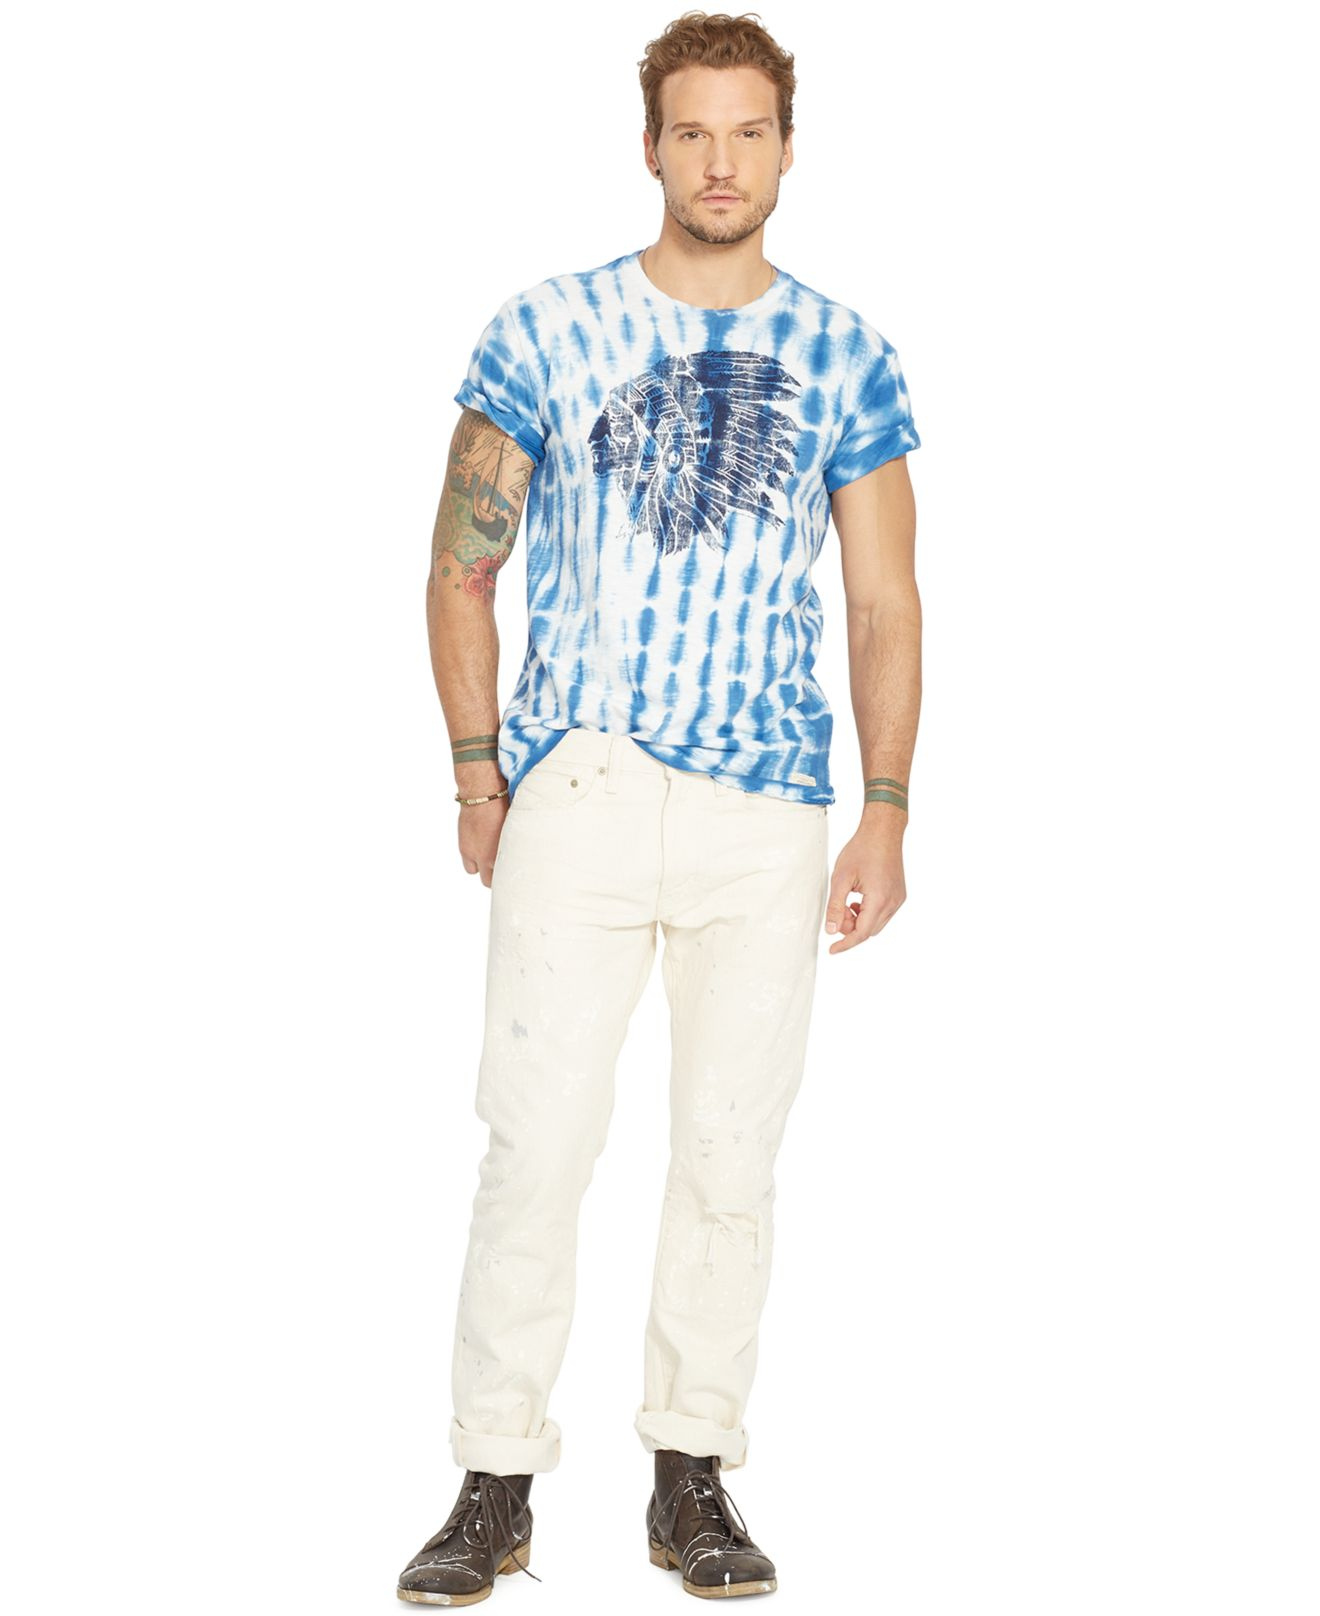 cd6e8c2288 Lyst - Denim   Supply Ralph Lauren Tie-dyed Graphic T-shirt in Blue ...